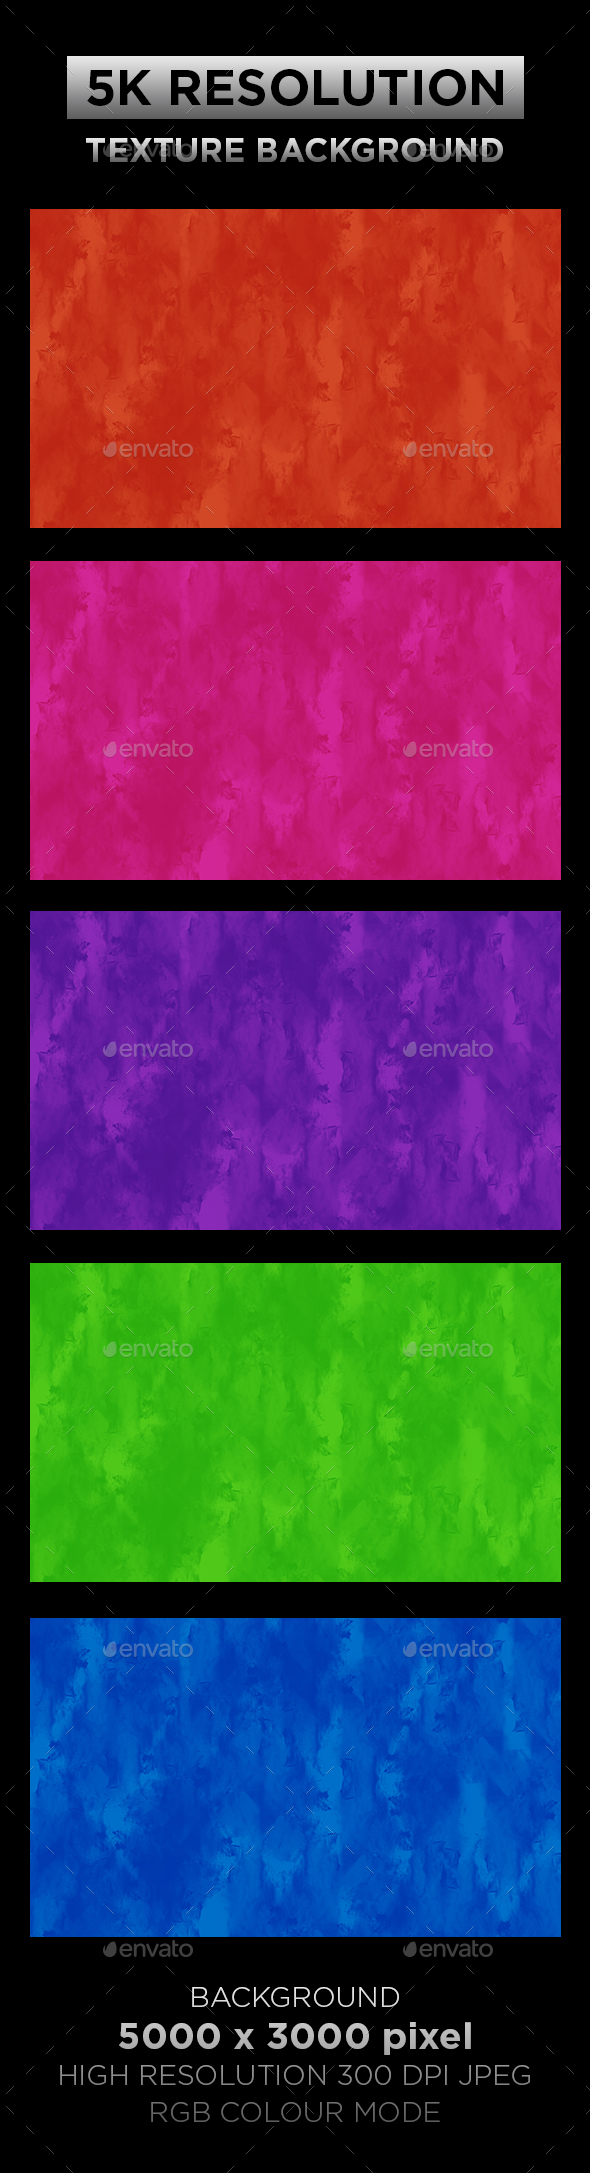 Texture Background Set 005